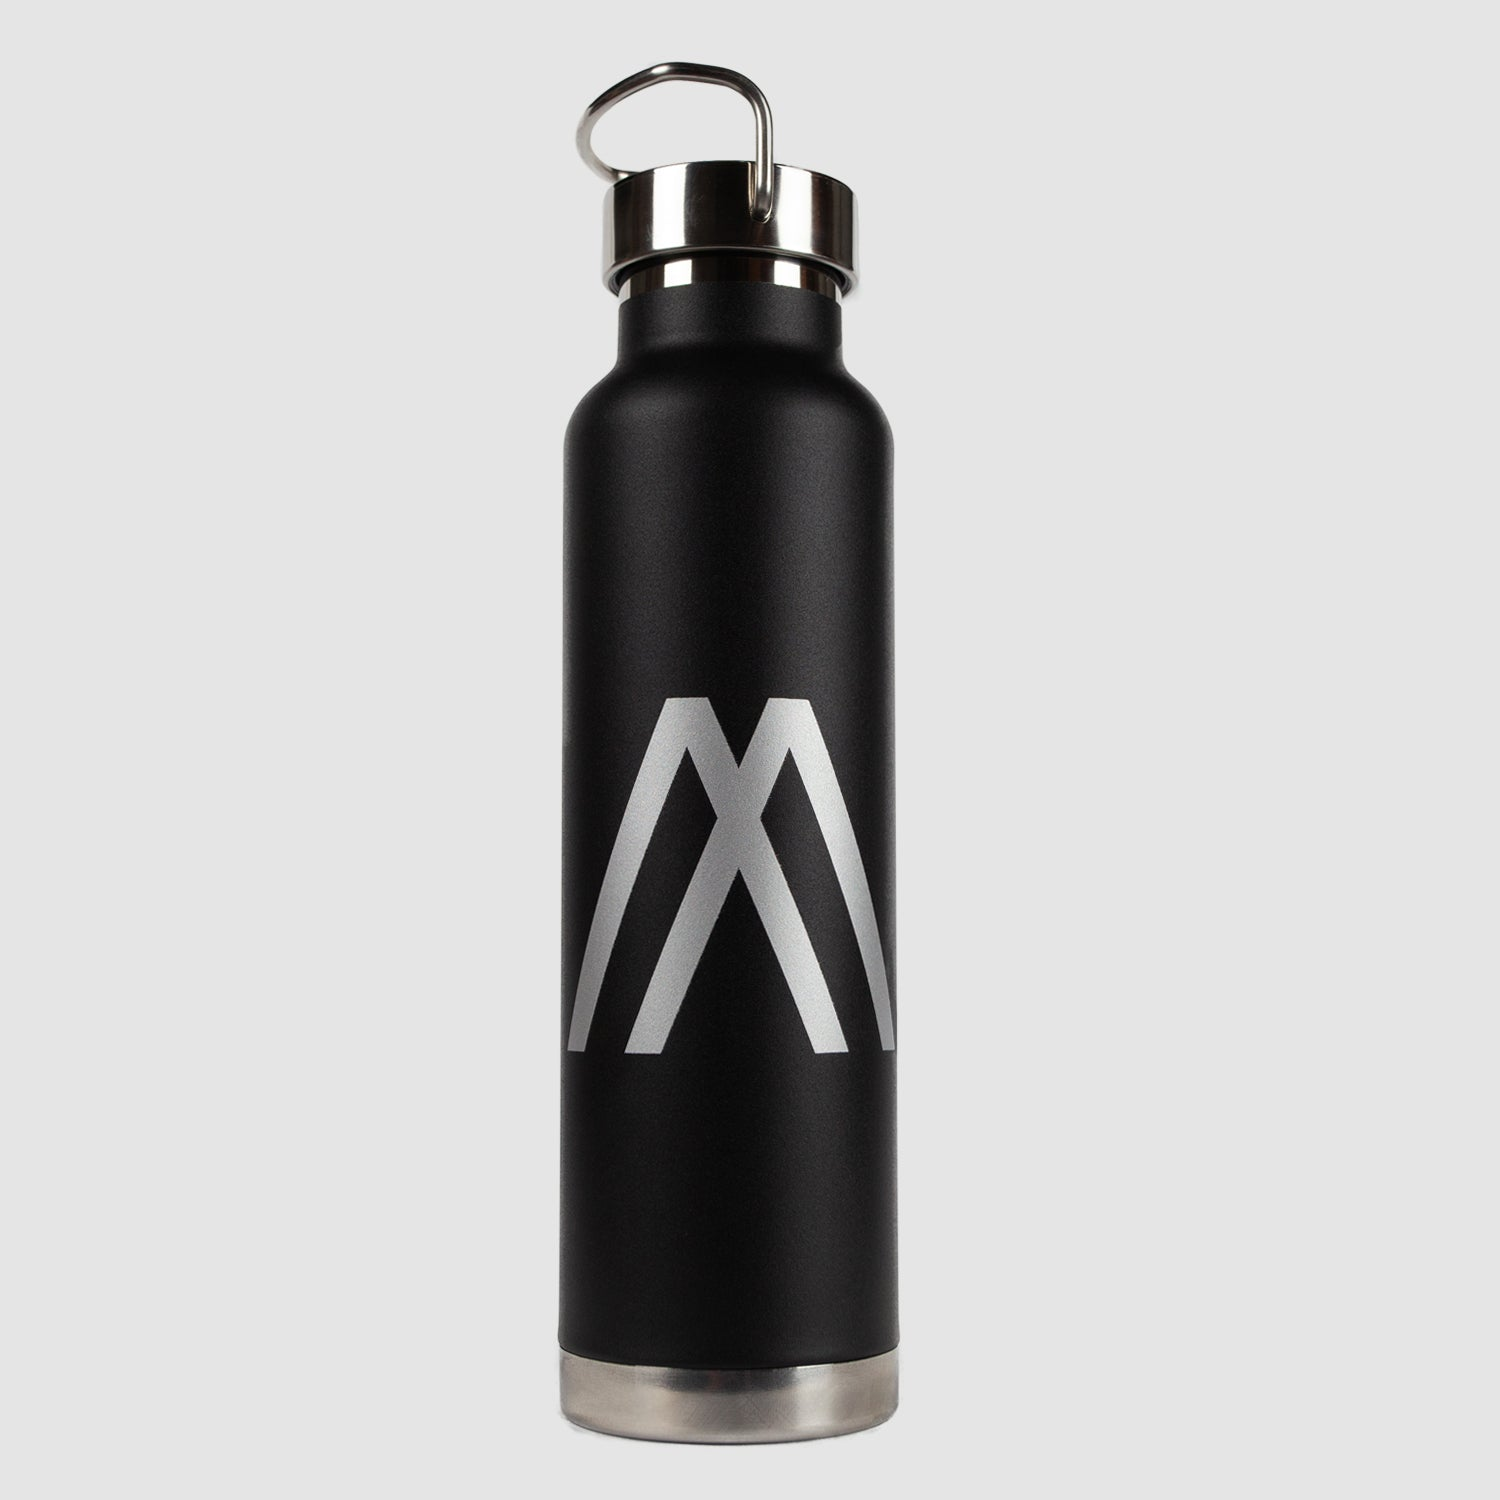 22oz INSULATED BOTTLE